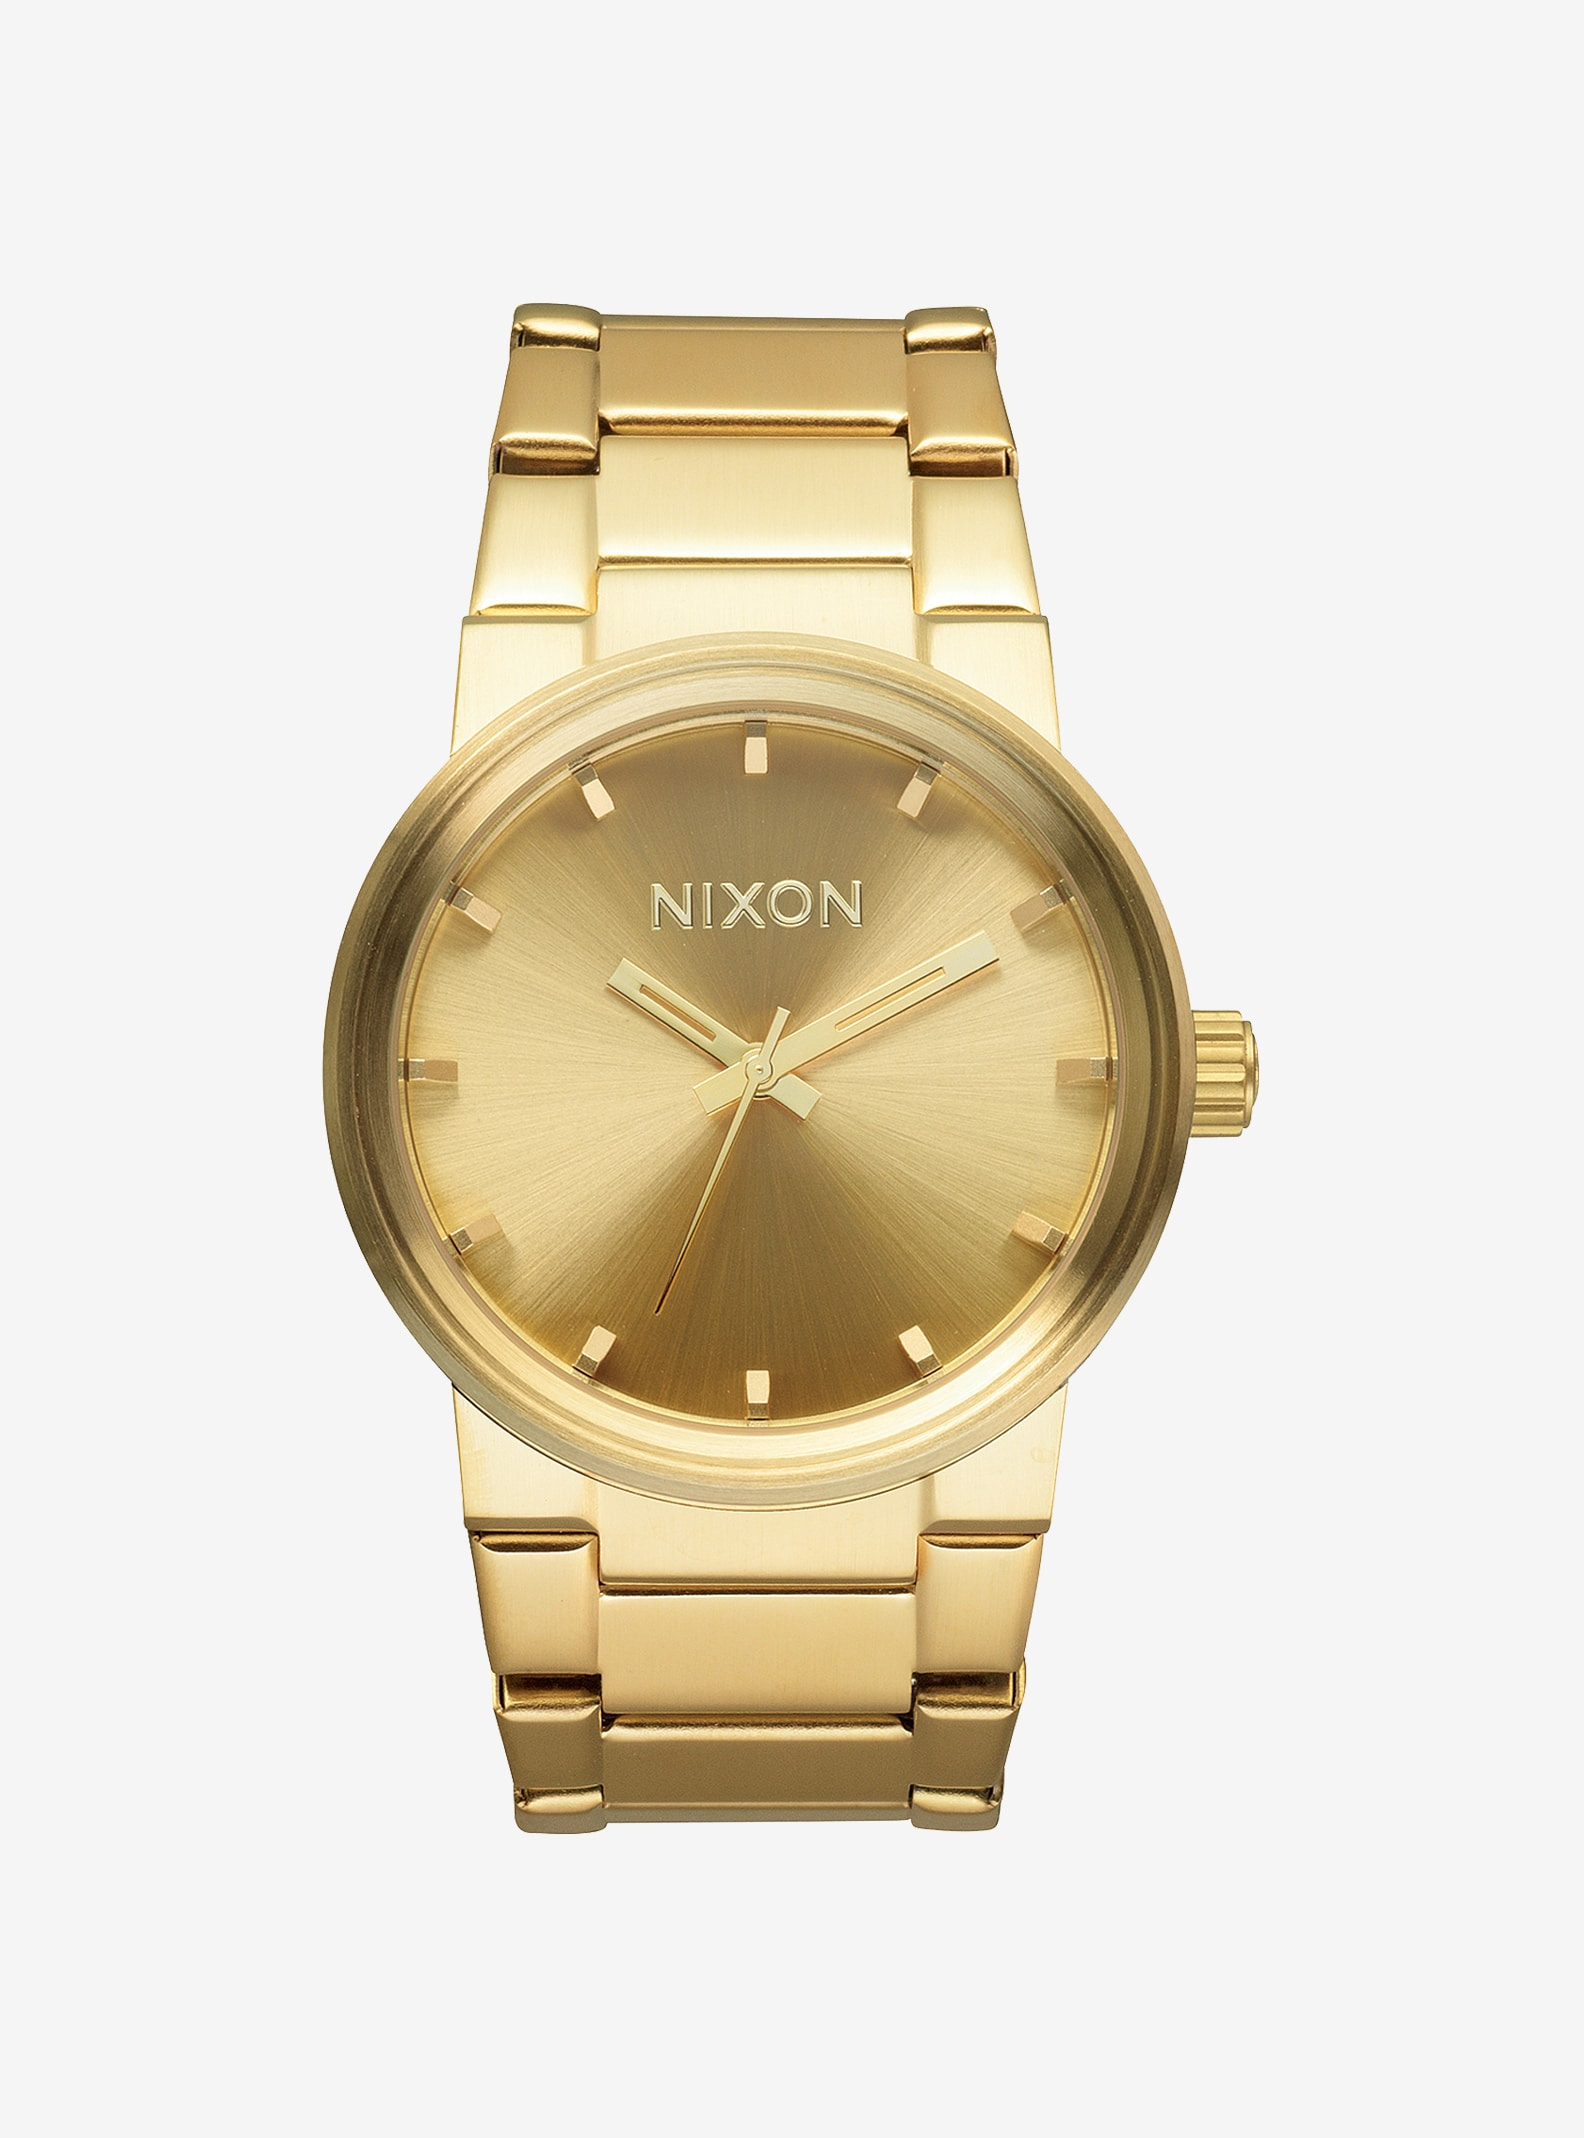 Nixon Cannon Watch shown in Gold